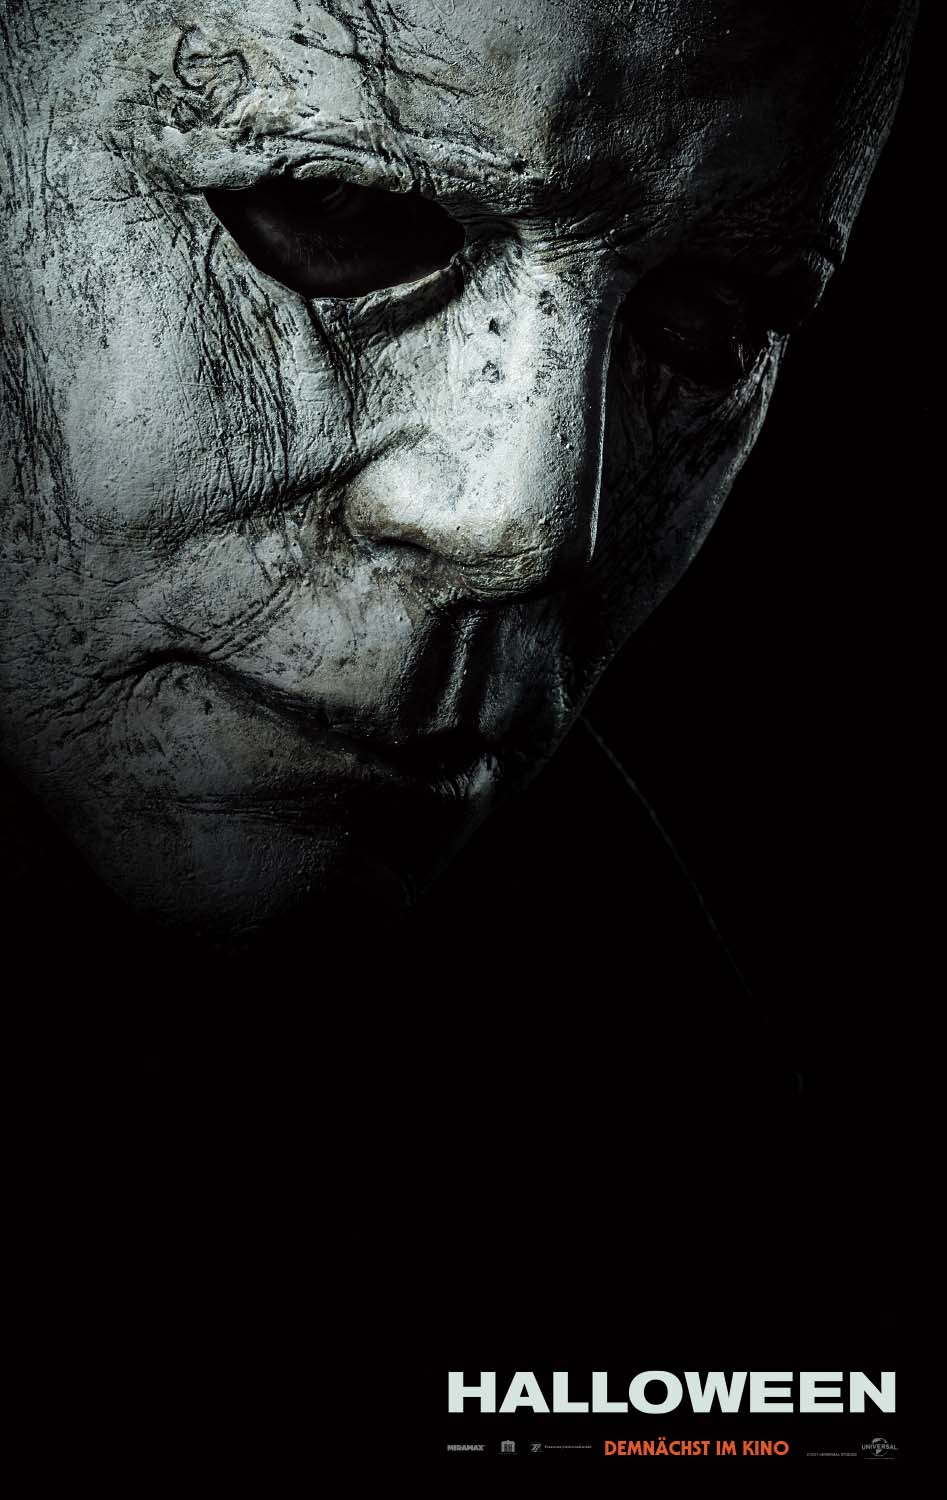 Halloween Film 2018 Trailer Kritik Kinode